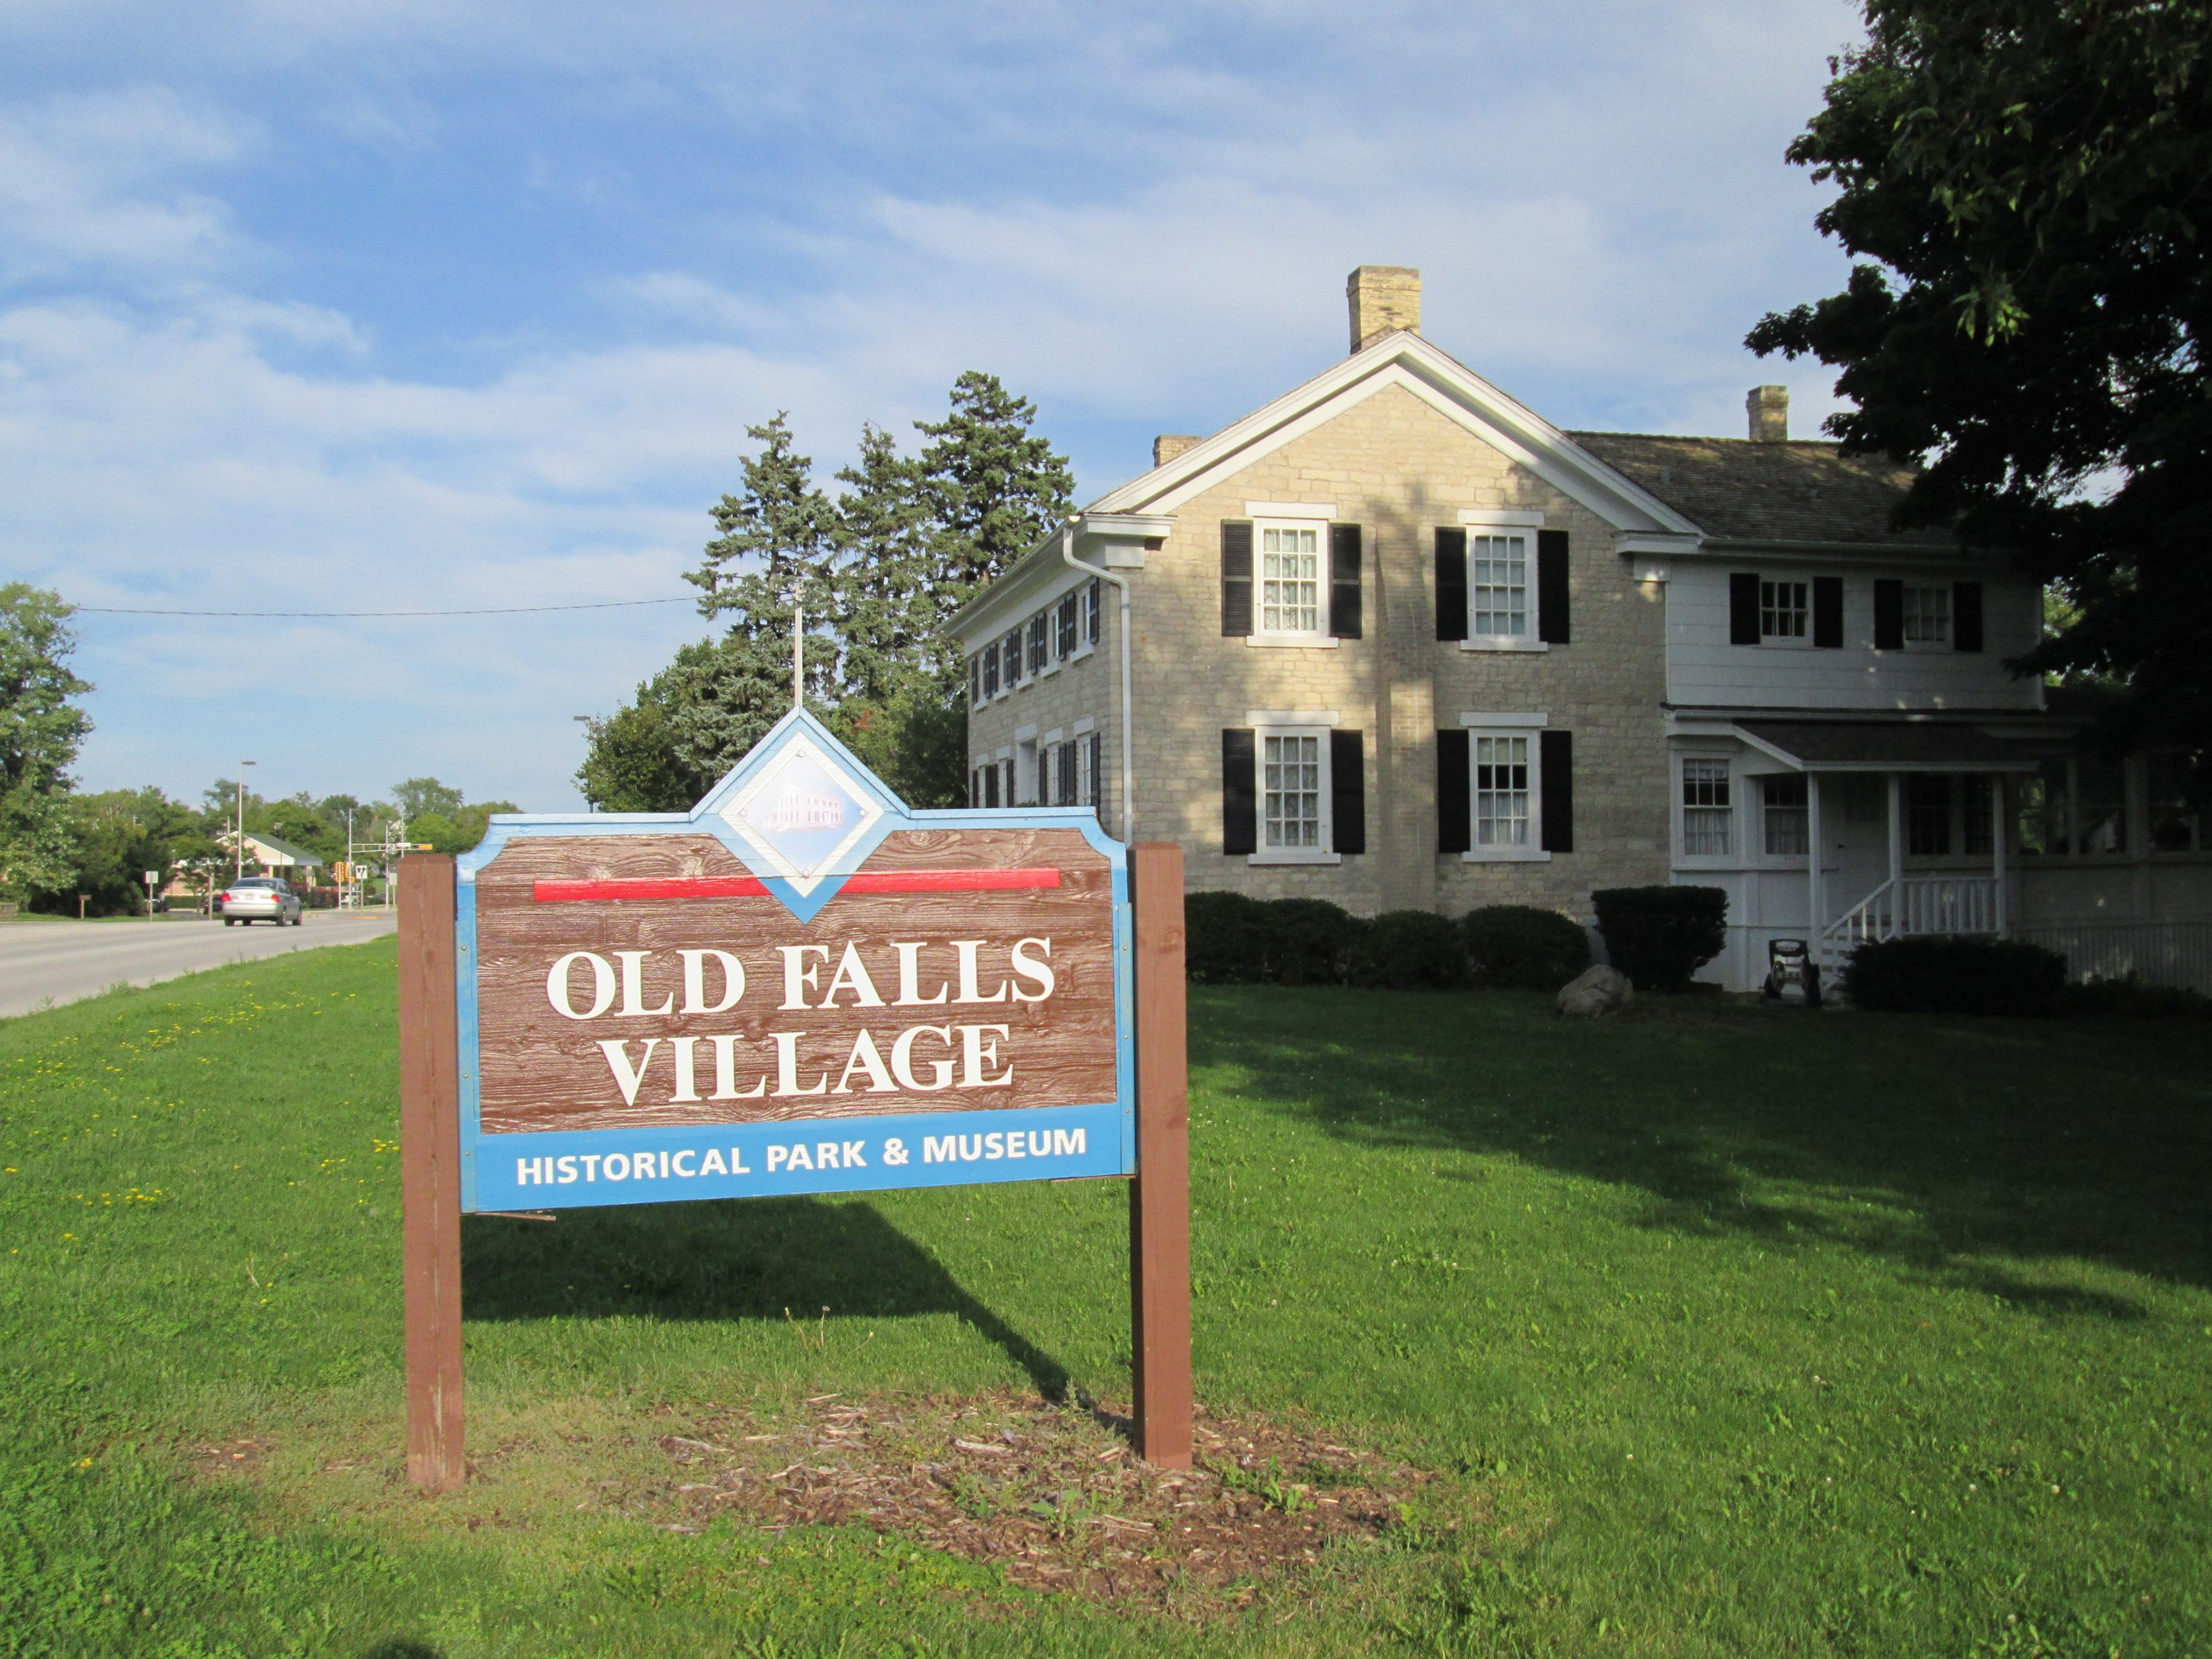 Old Falls Village Historical Park